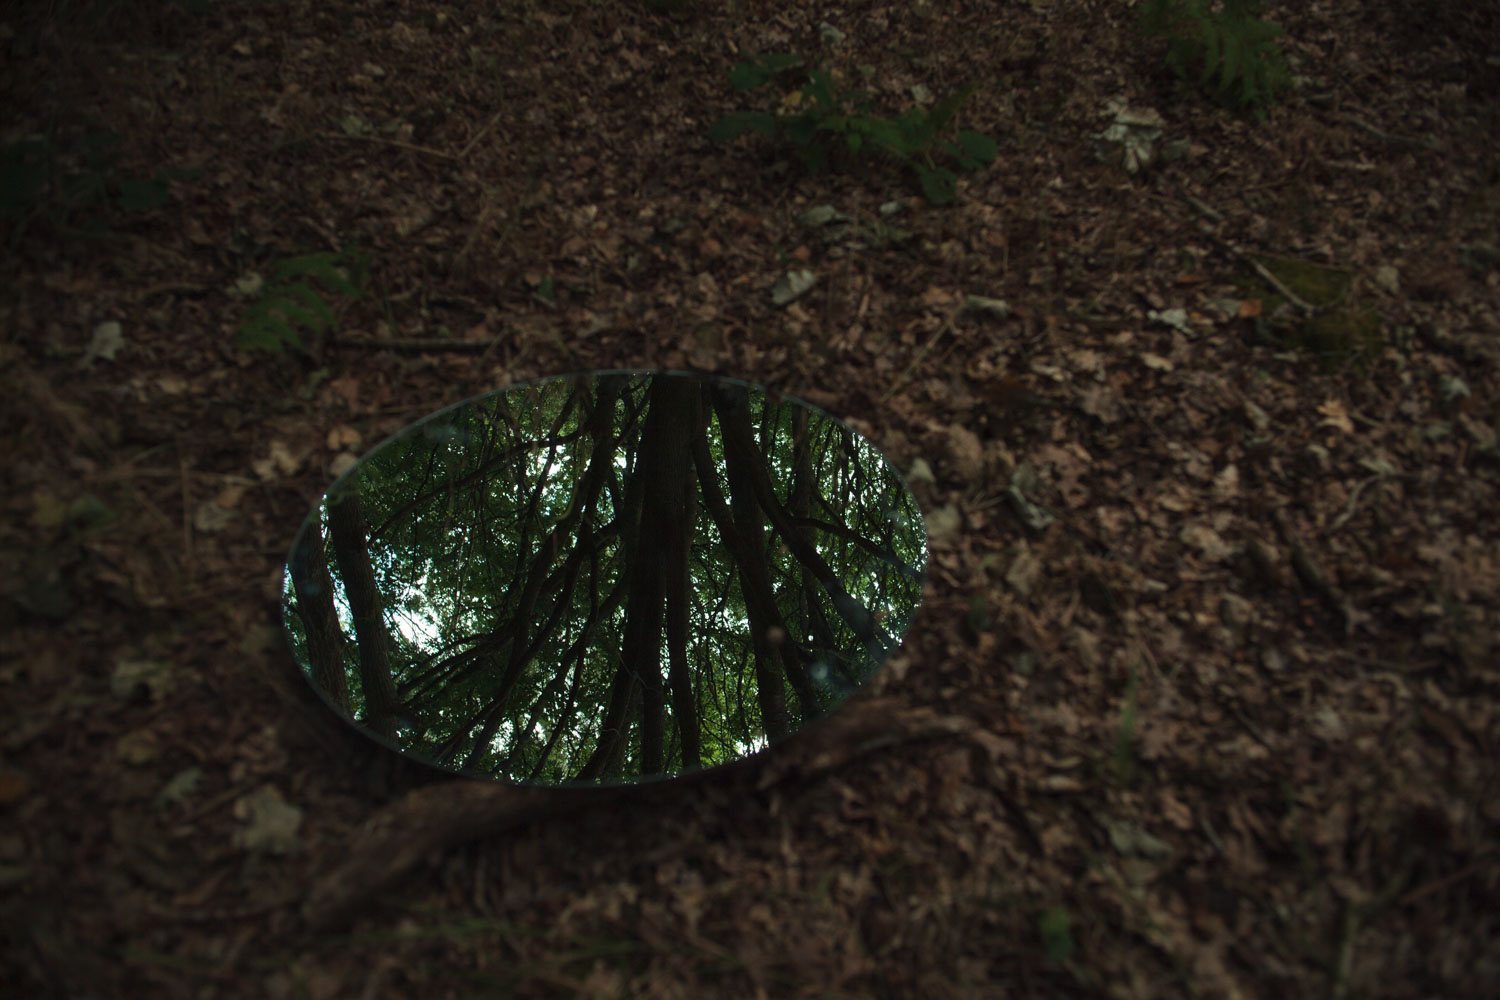 Video still of a mirror on the ground of a forrest floor.